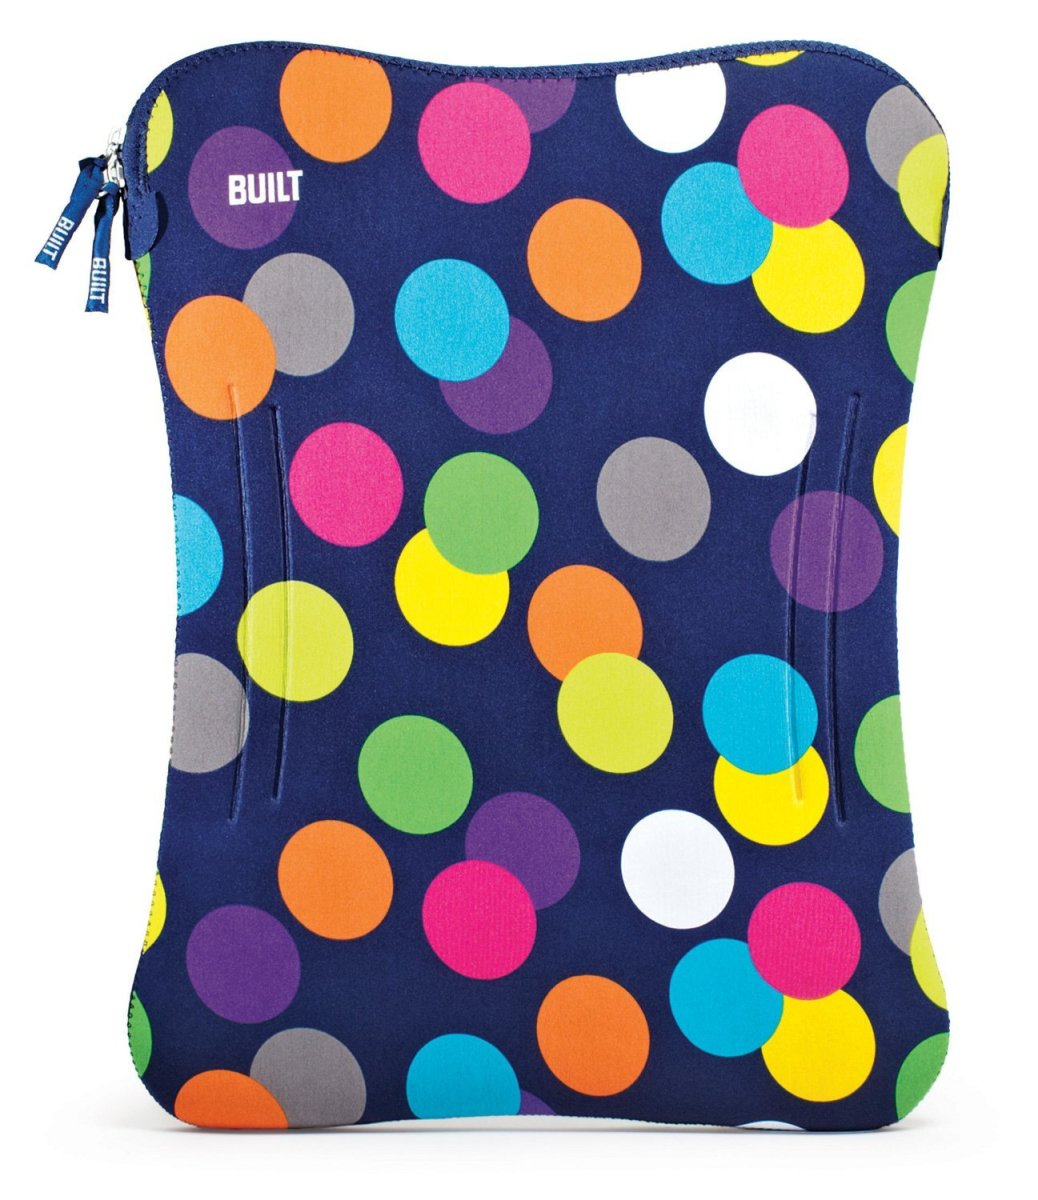 BUILT 17 Inch Neoprene Laptop Sleeve, Scatter Dot